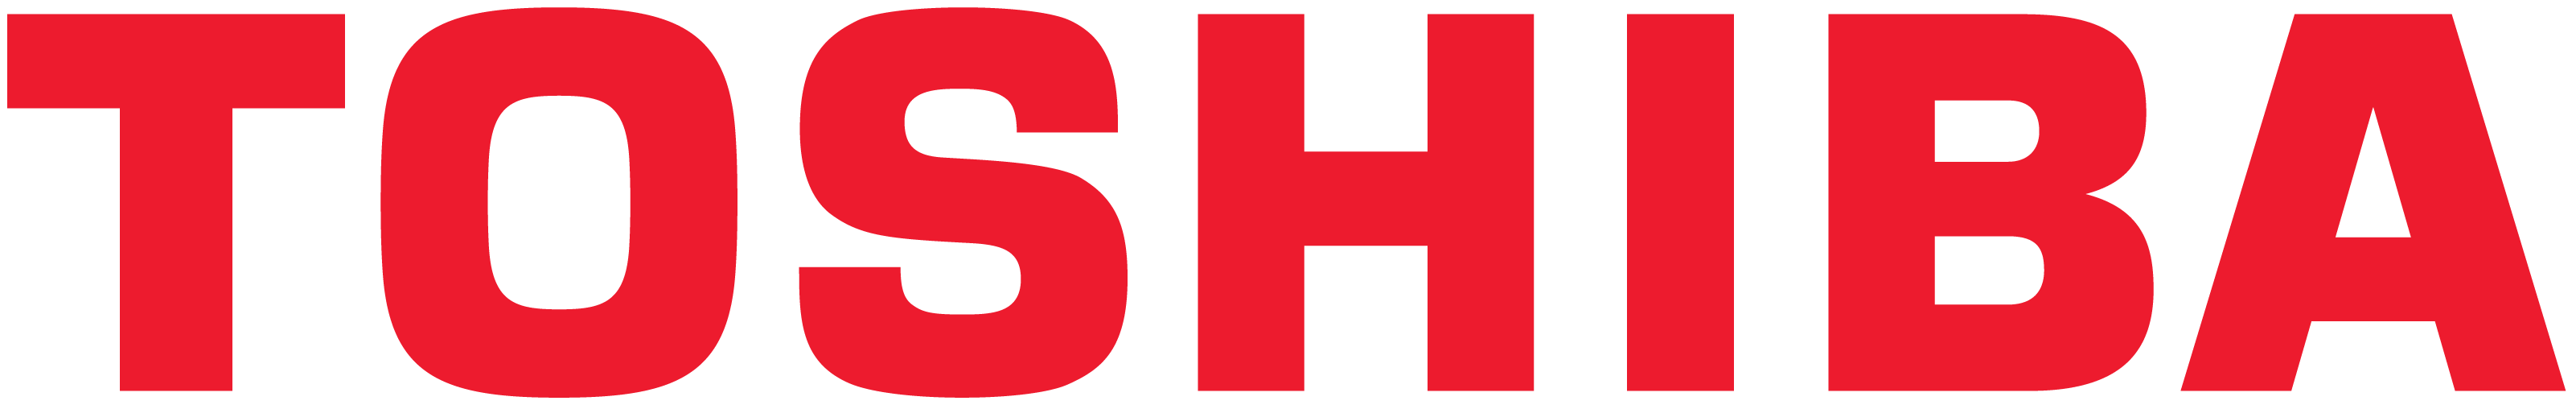 https://uniqueoffice.systems/wp-content/uploads/2019/08/Toshiba-Logo.png